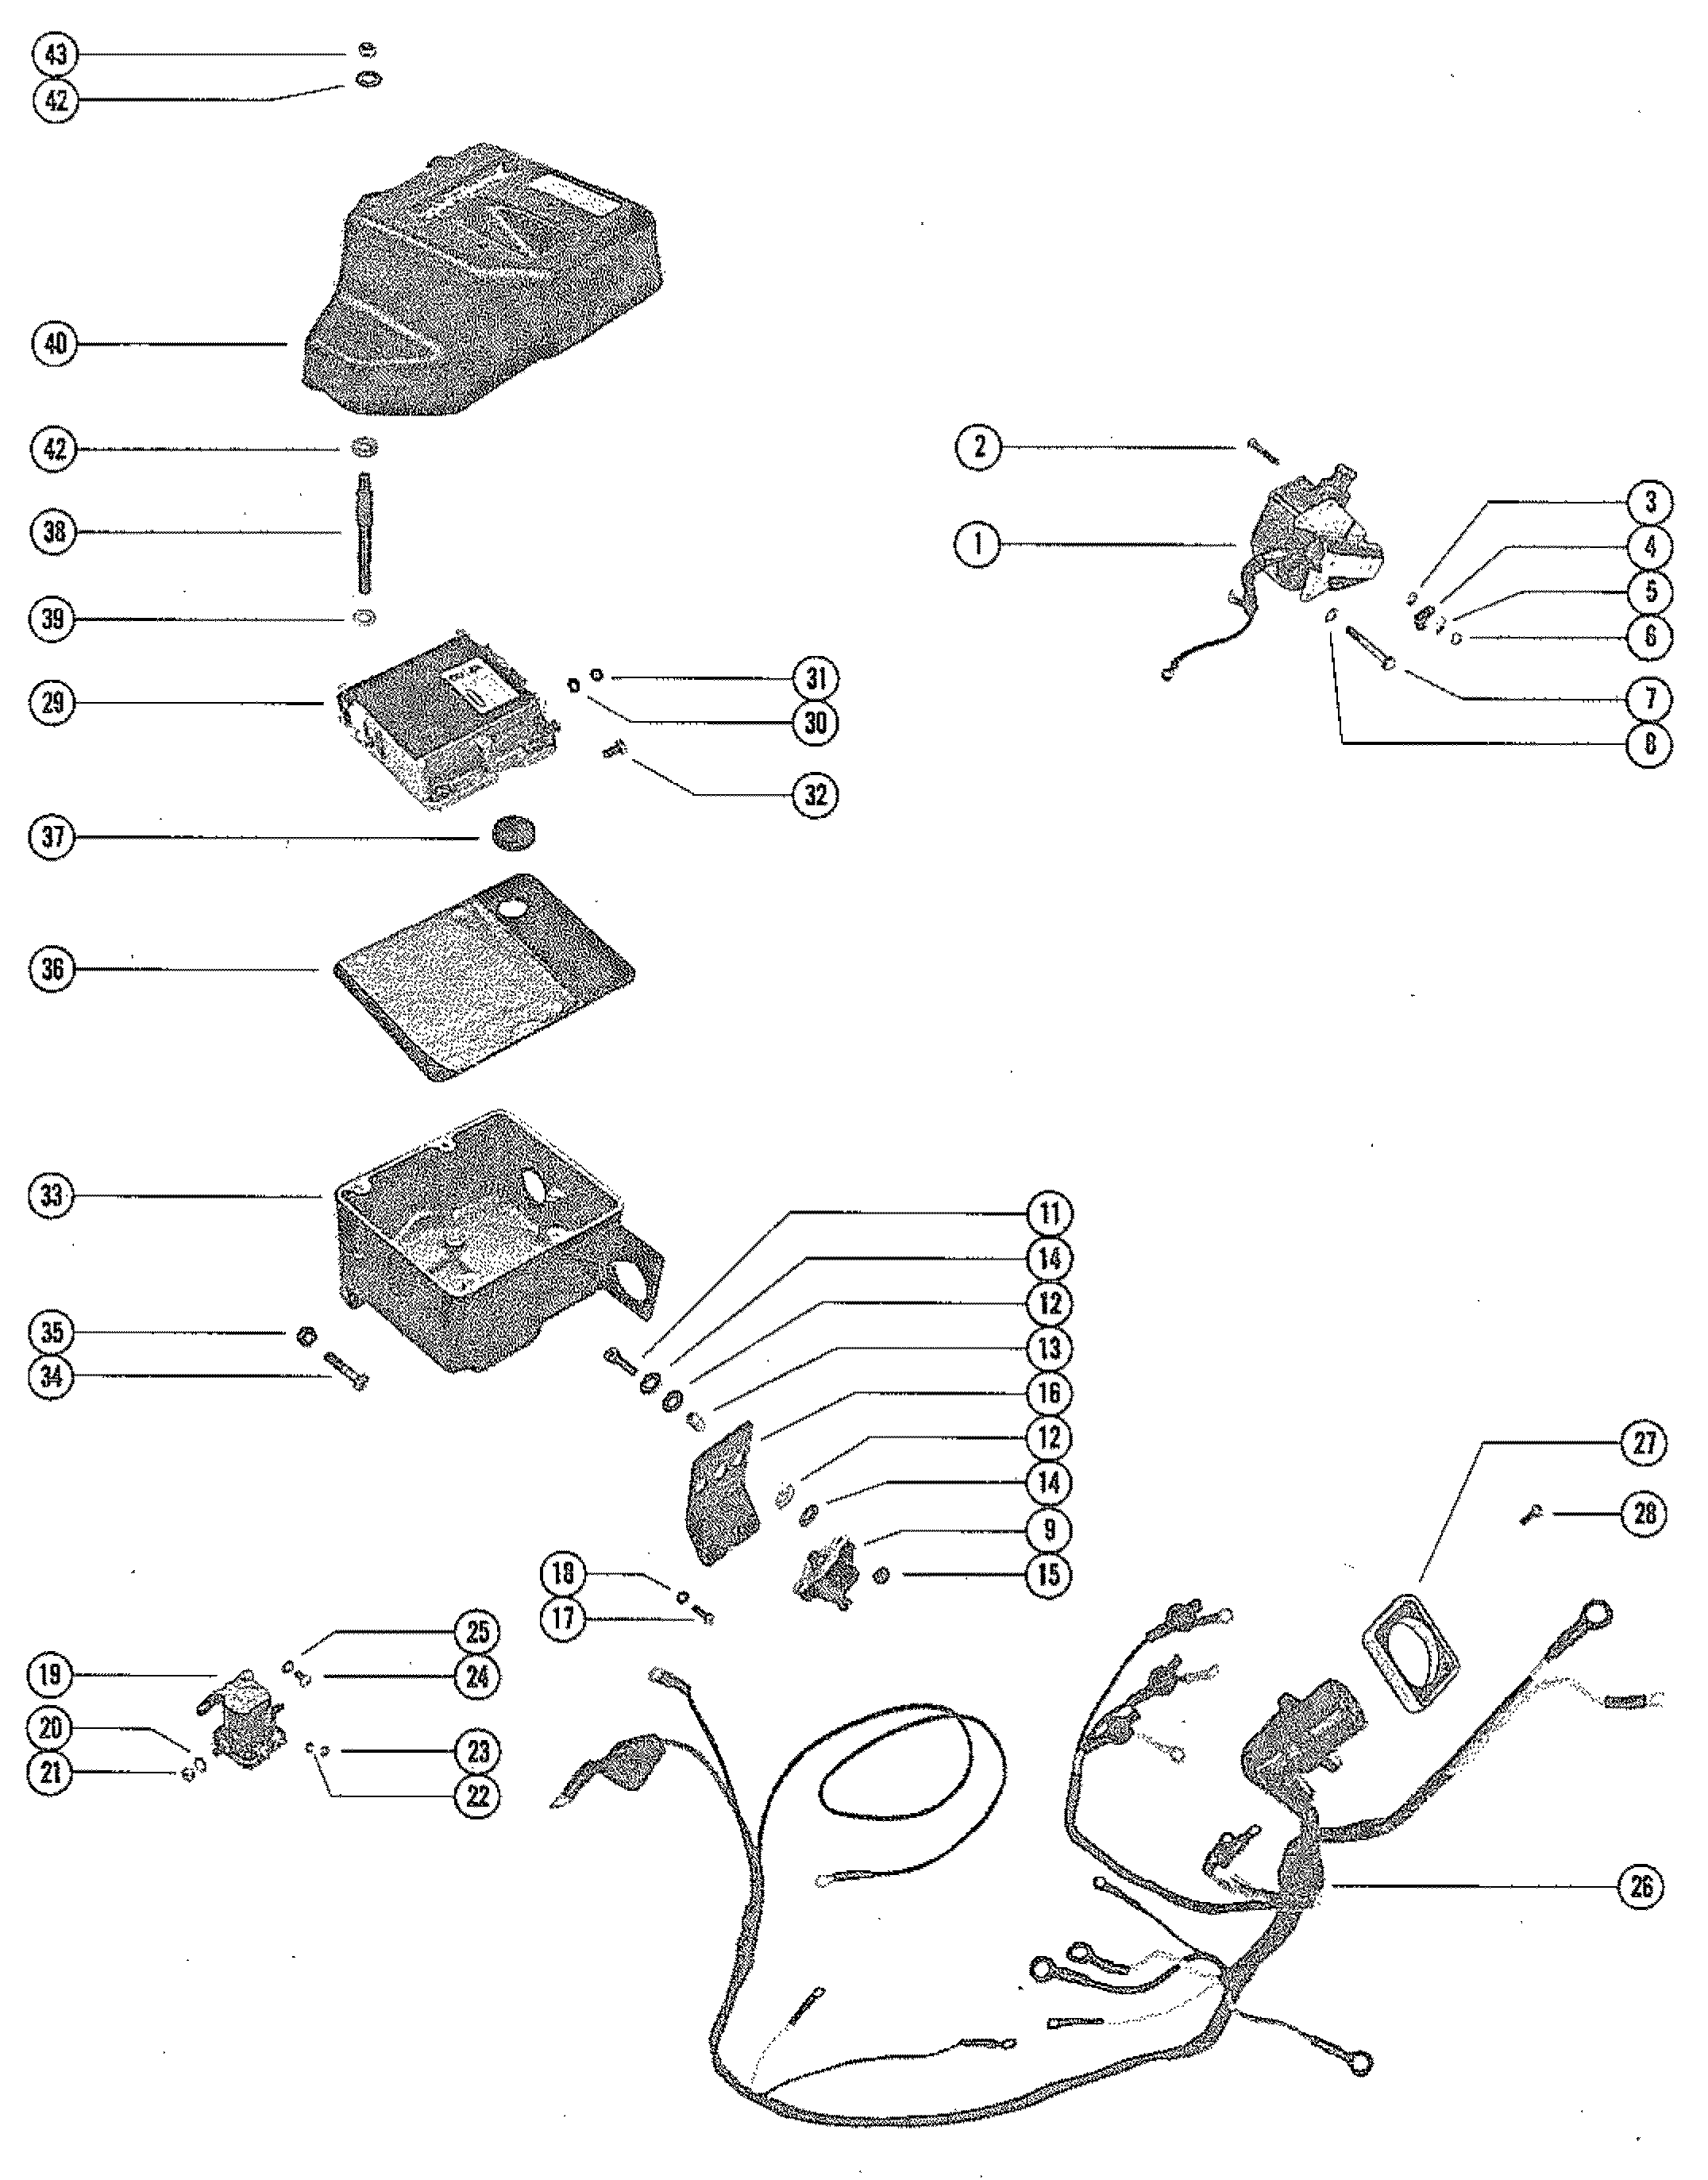 A8 ������� ��������� mercruiser ��������� 330 mie gm 454 v 8 1977 Thunderbolt Ignition Wiring Diagram at edmiracle.co